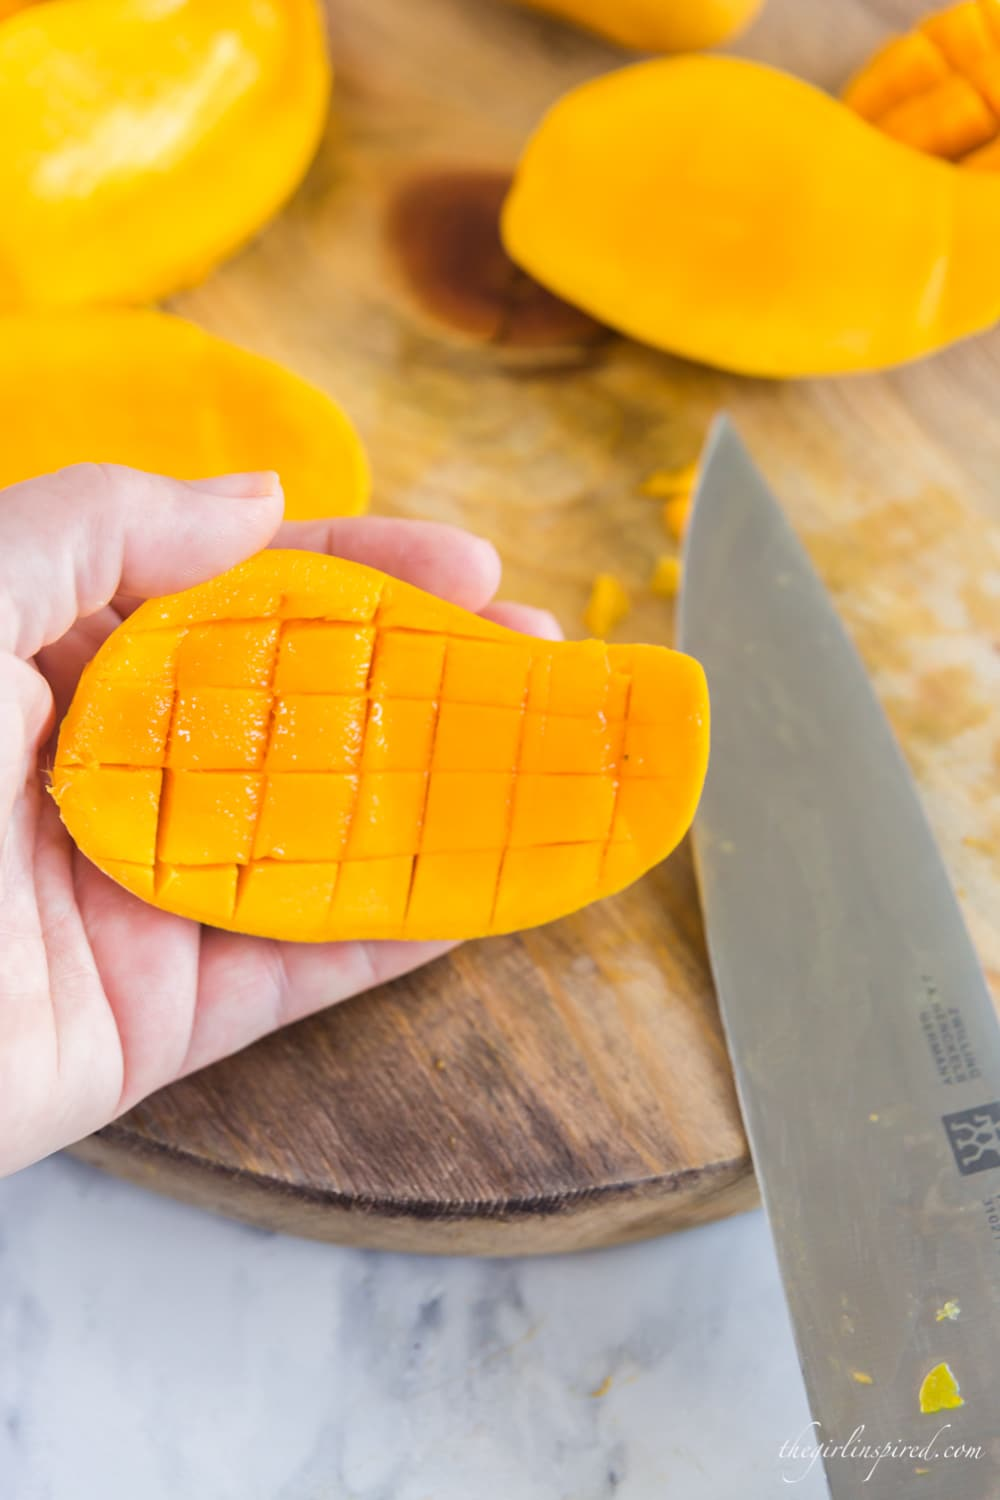 knife, wooden cutting board, and cube pattern cut into mango flesh